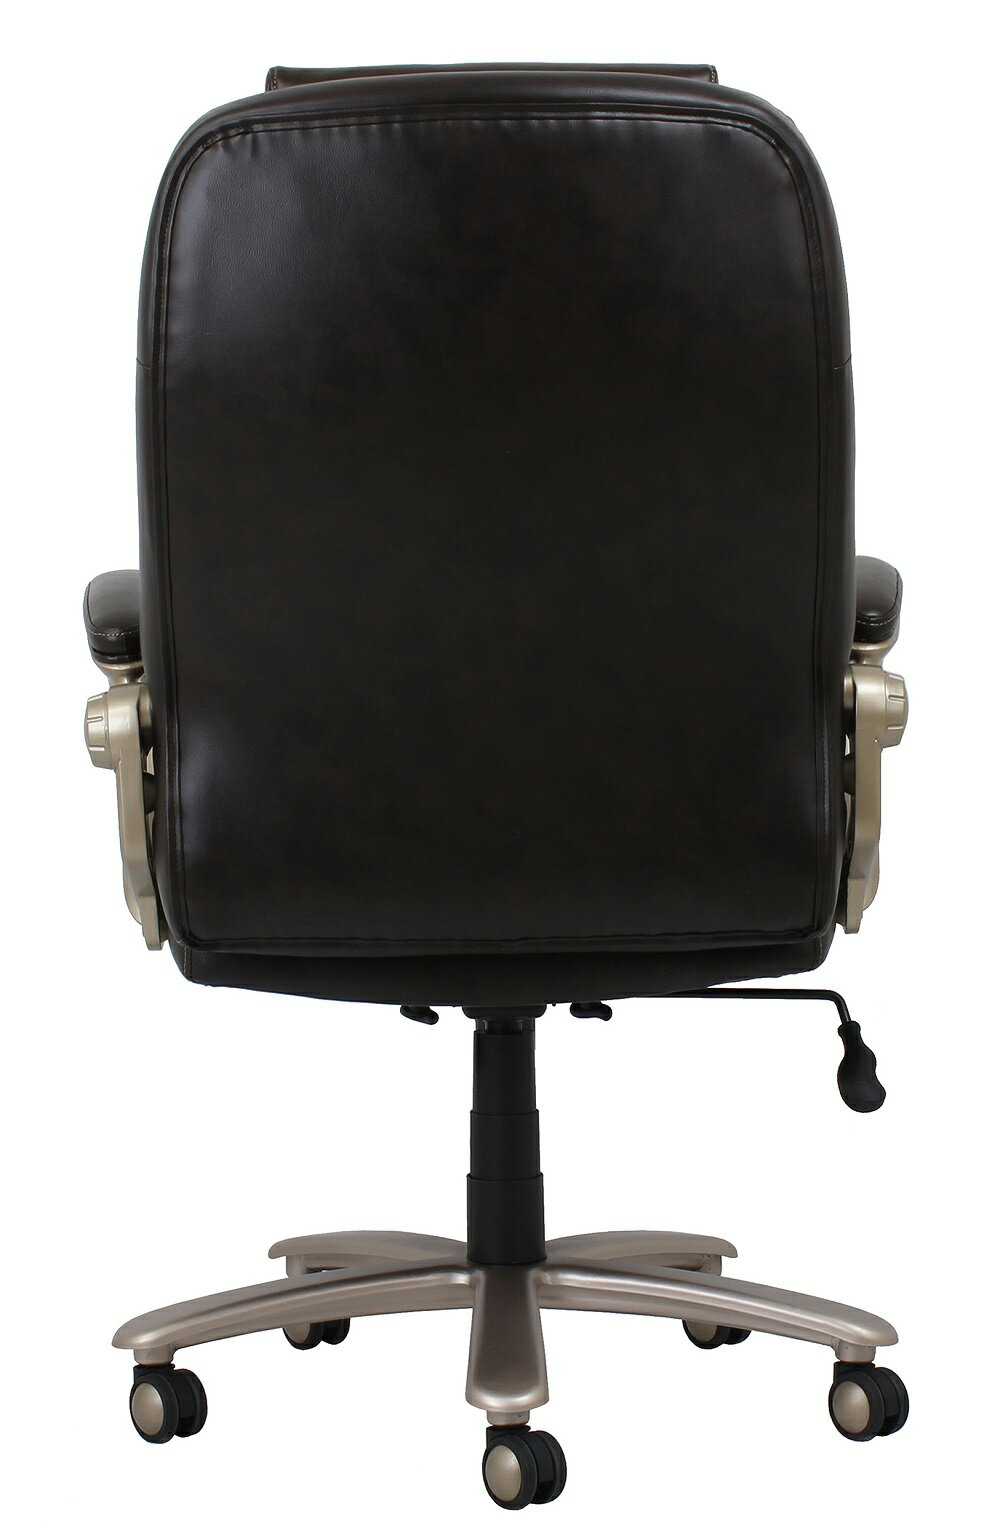 Essentials By Ofm Ess 201 Big And Tall Leather Executive Office Chair With Arms Brown Bronze